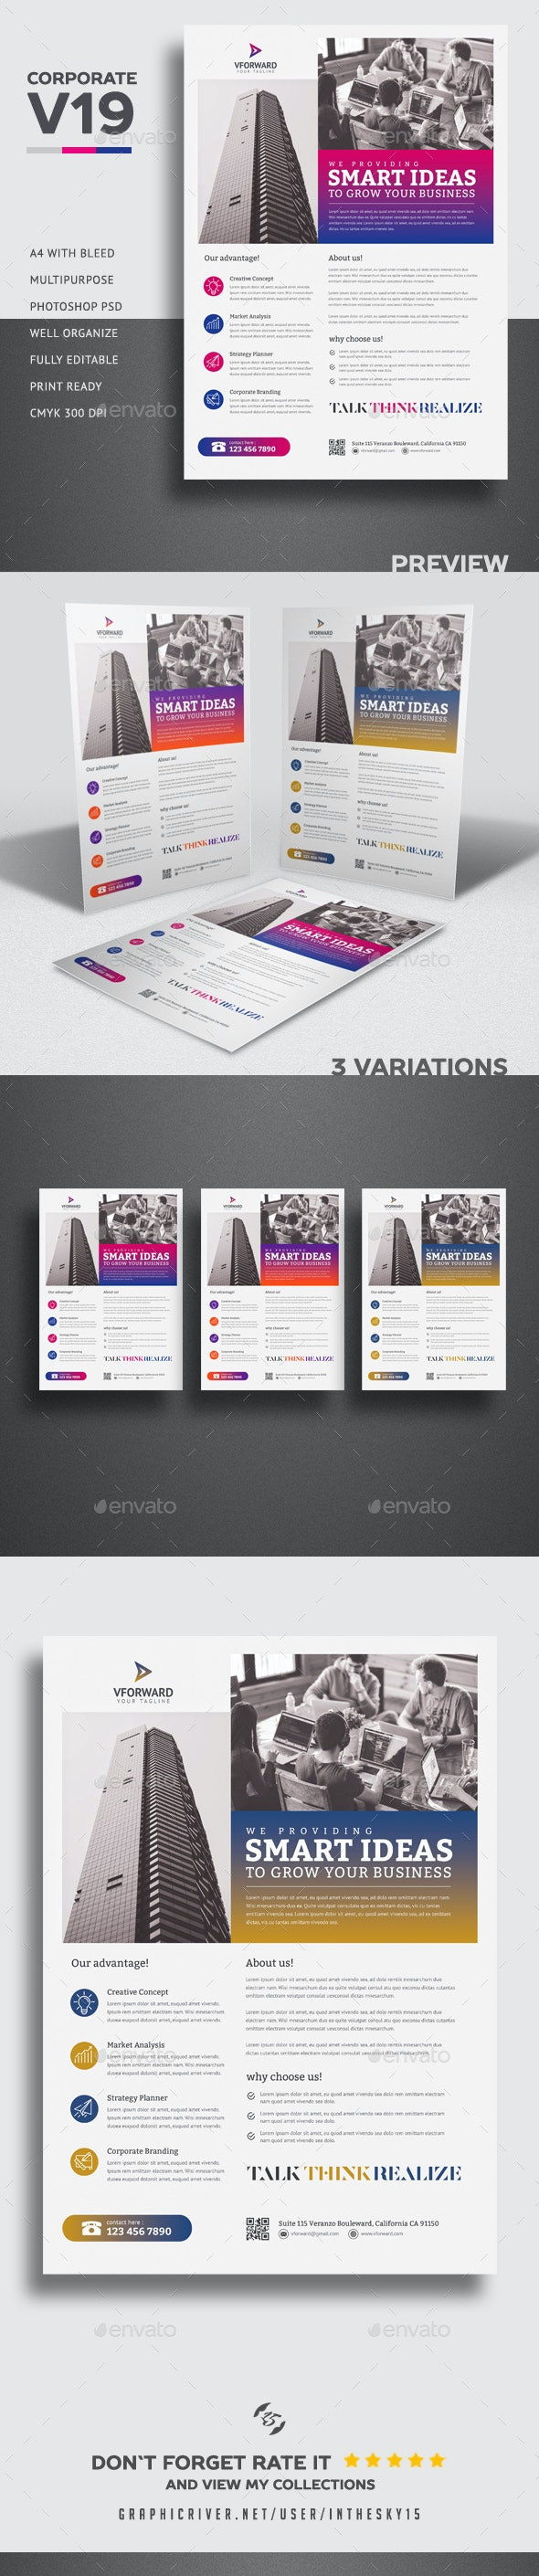 Corporate V19 Flyer Template - Corporate Flyers